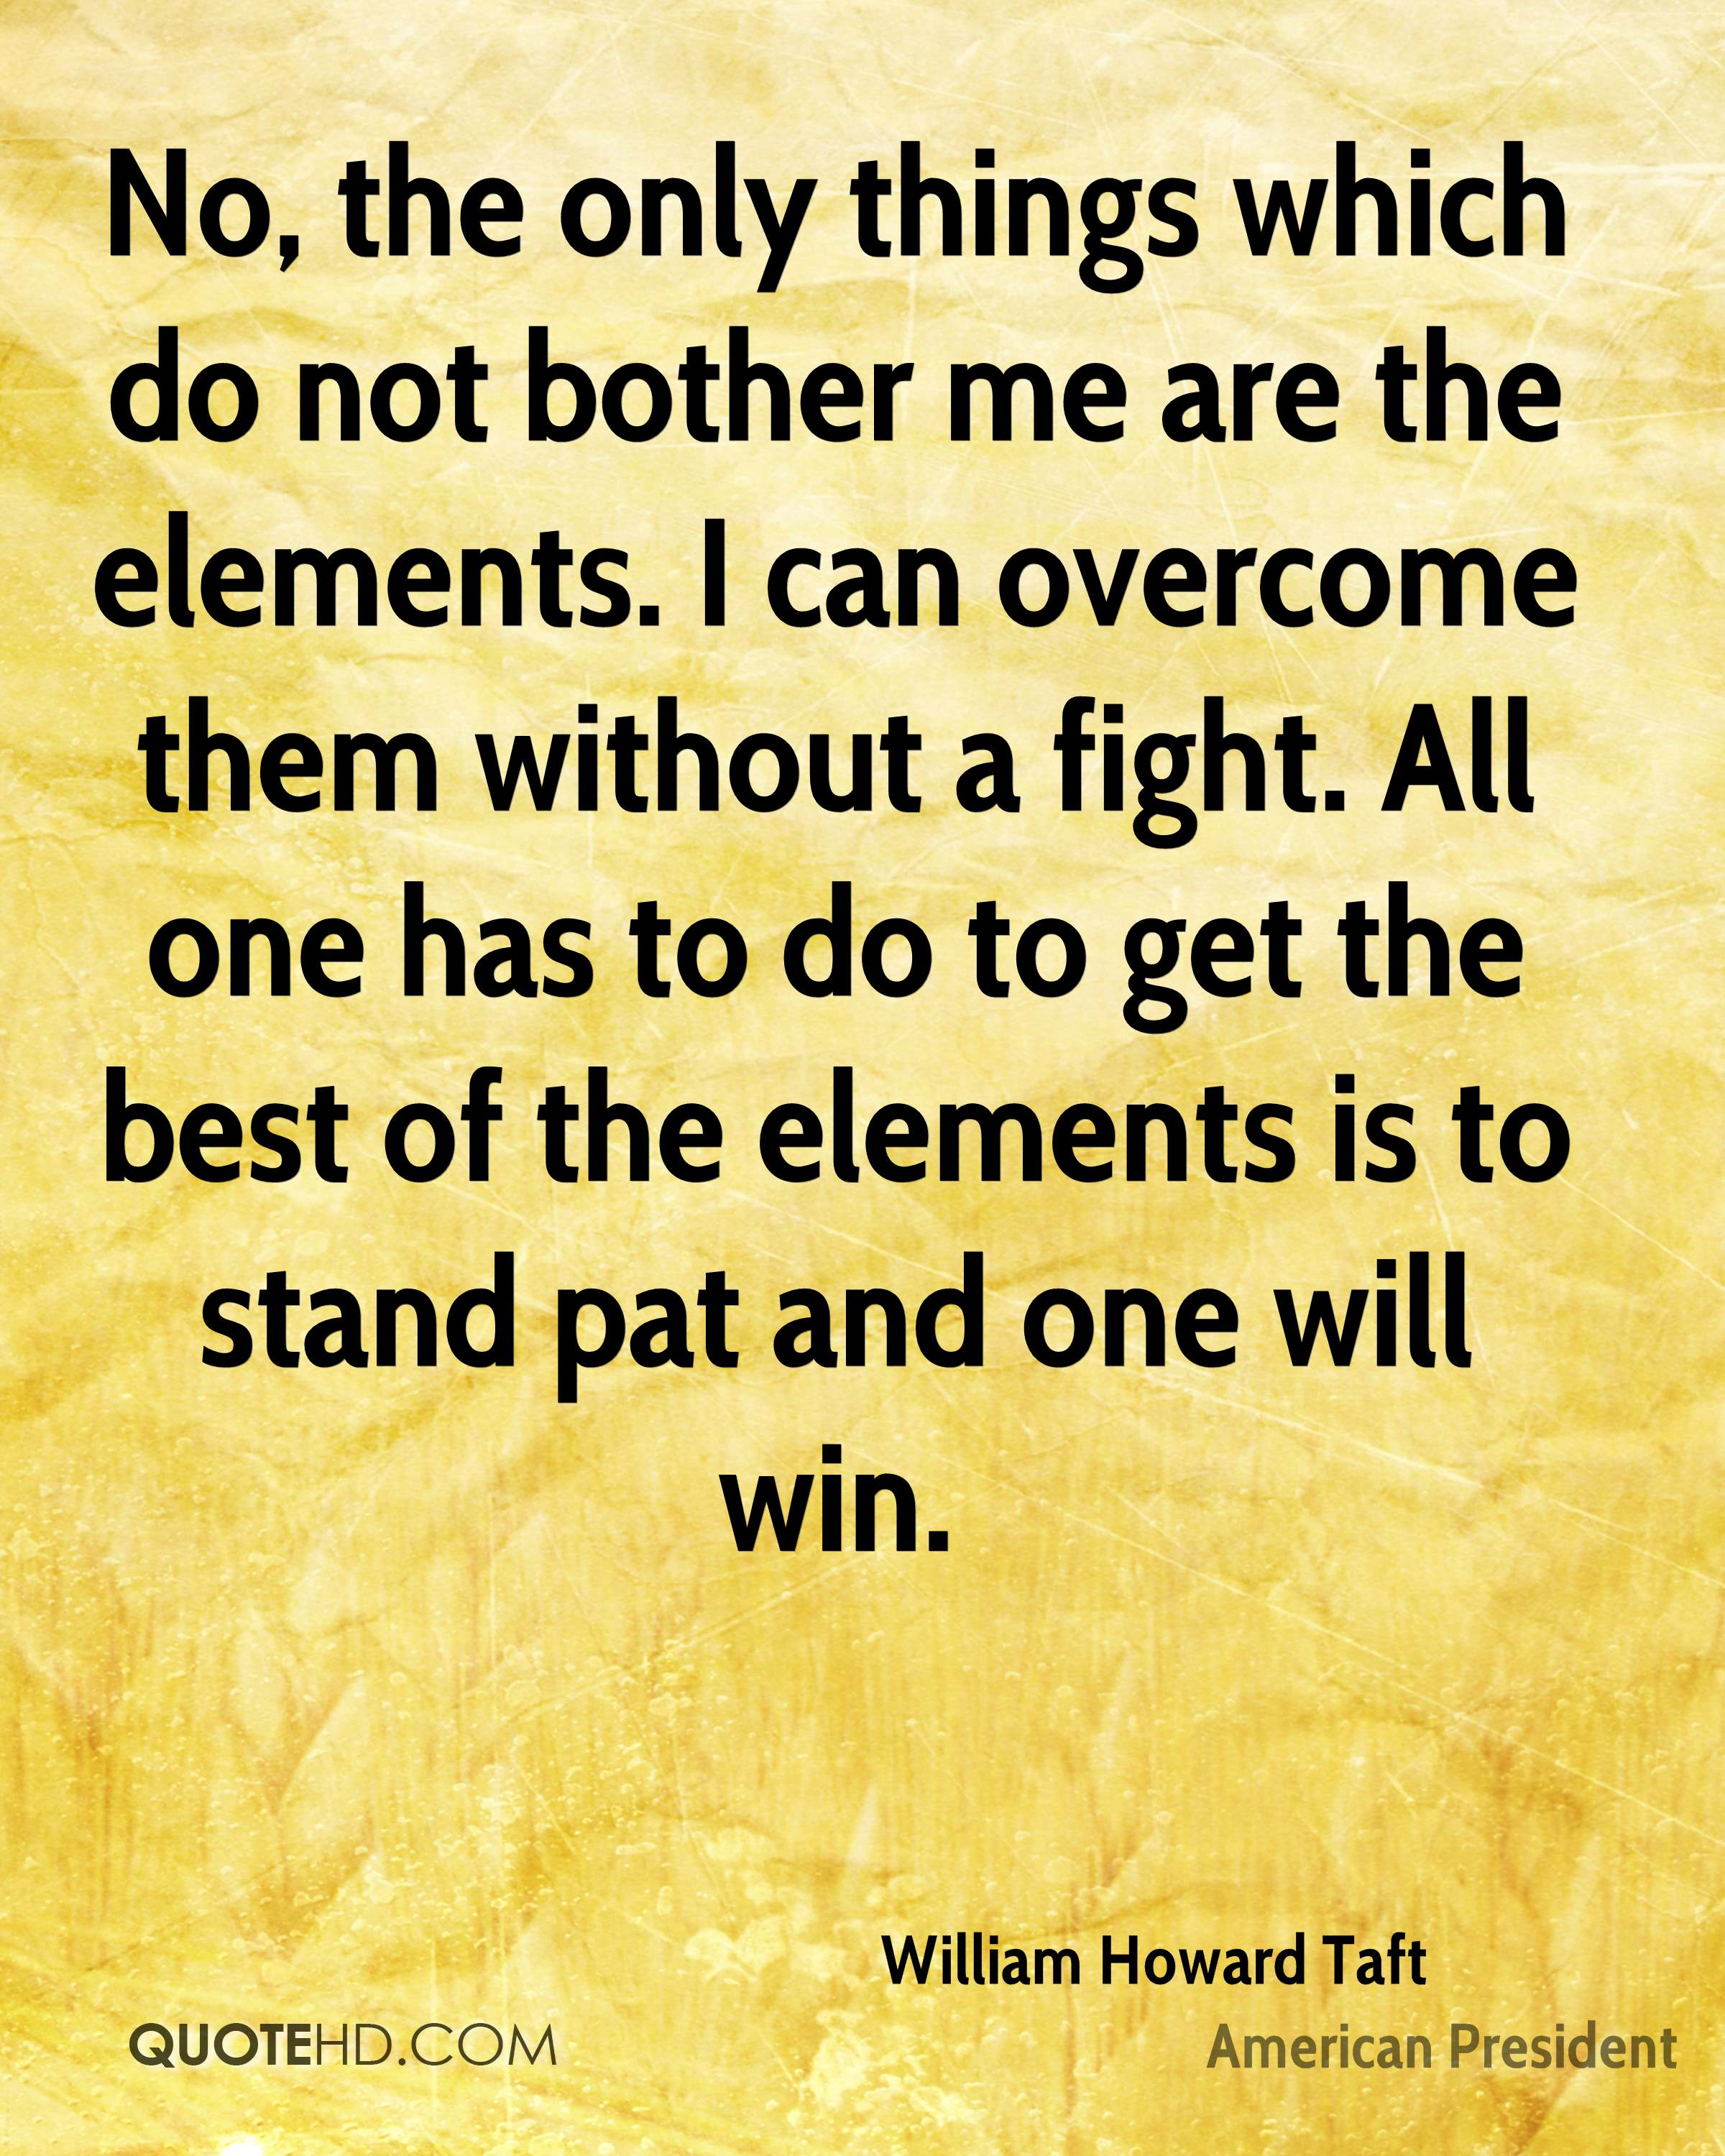 No, the only things which do not bother me are the elements. I can overcome them without a fight. All one has to do to get the best of the elements is to stand pat and one will win.